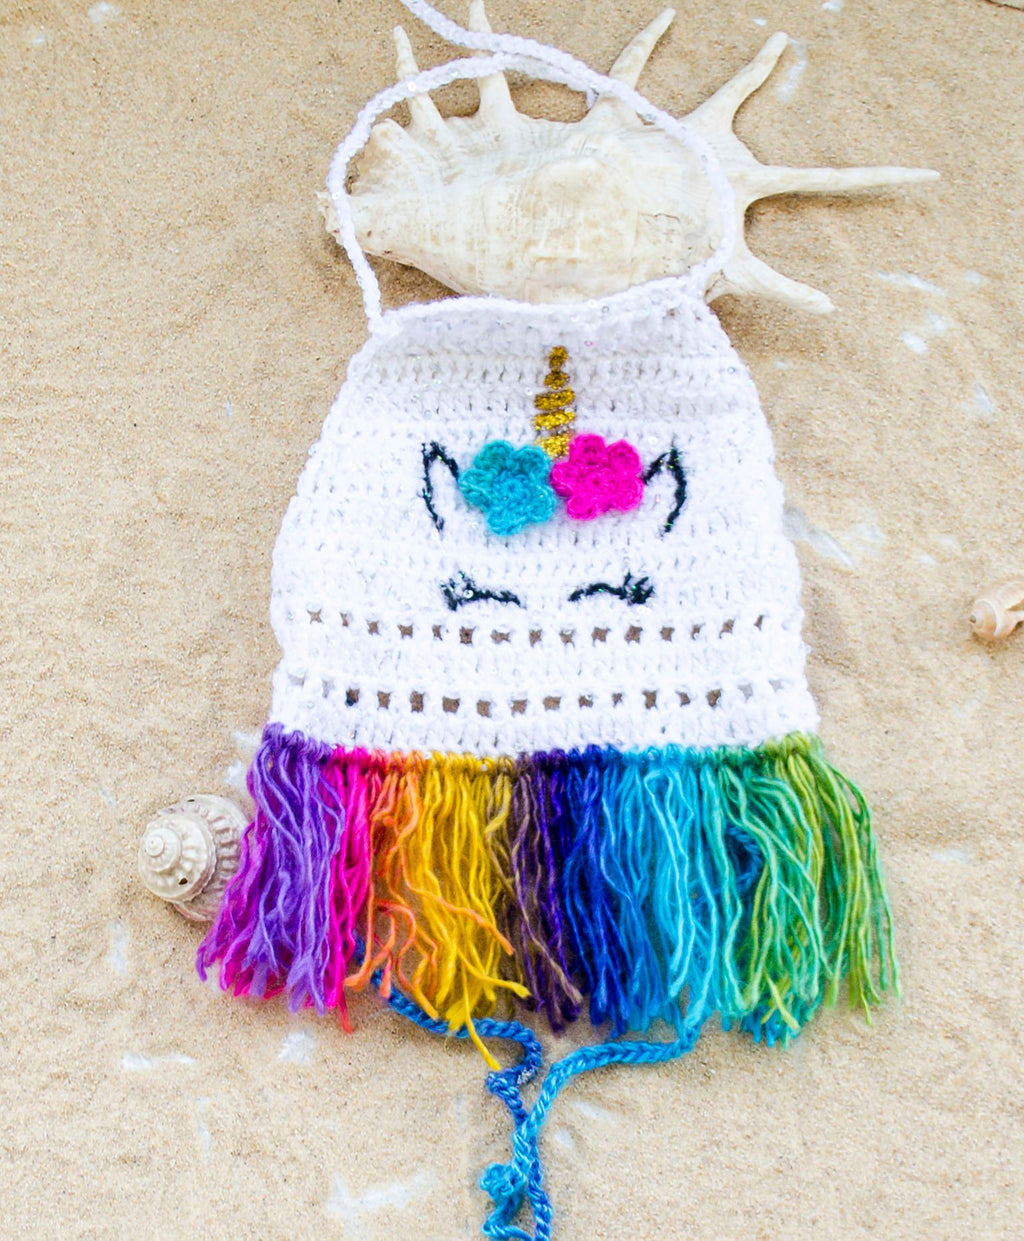 Handmade Crochet Unicorn White Tank with Rainbow Fringes - Babazen